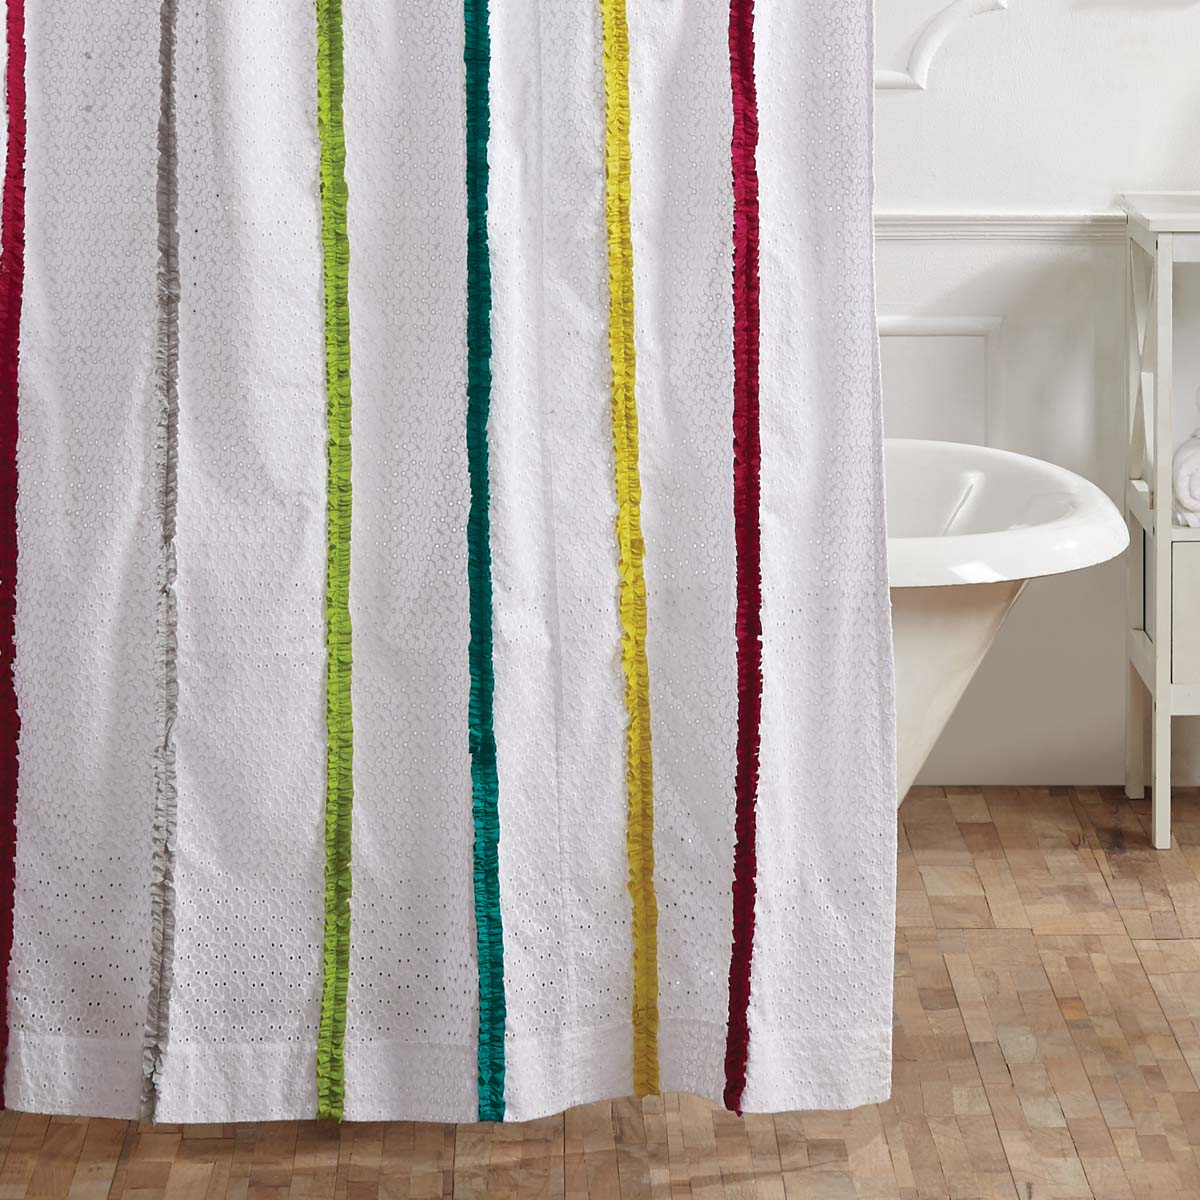 Everly Shower Curtain.